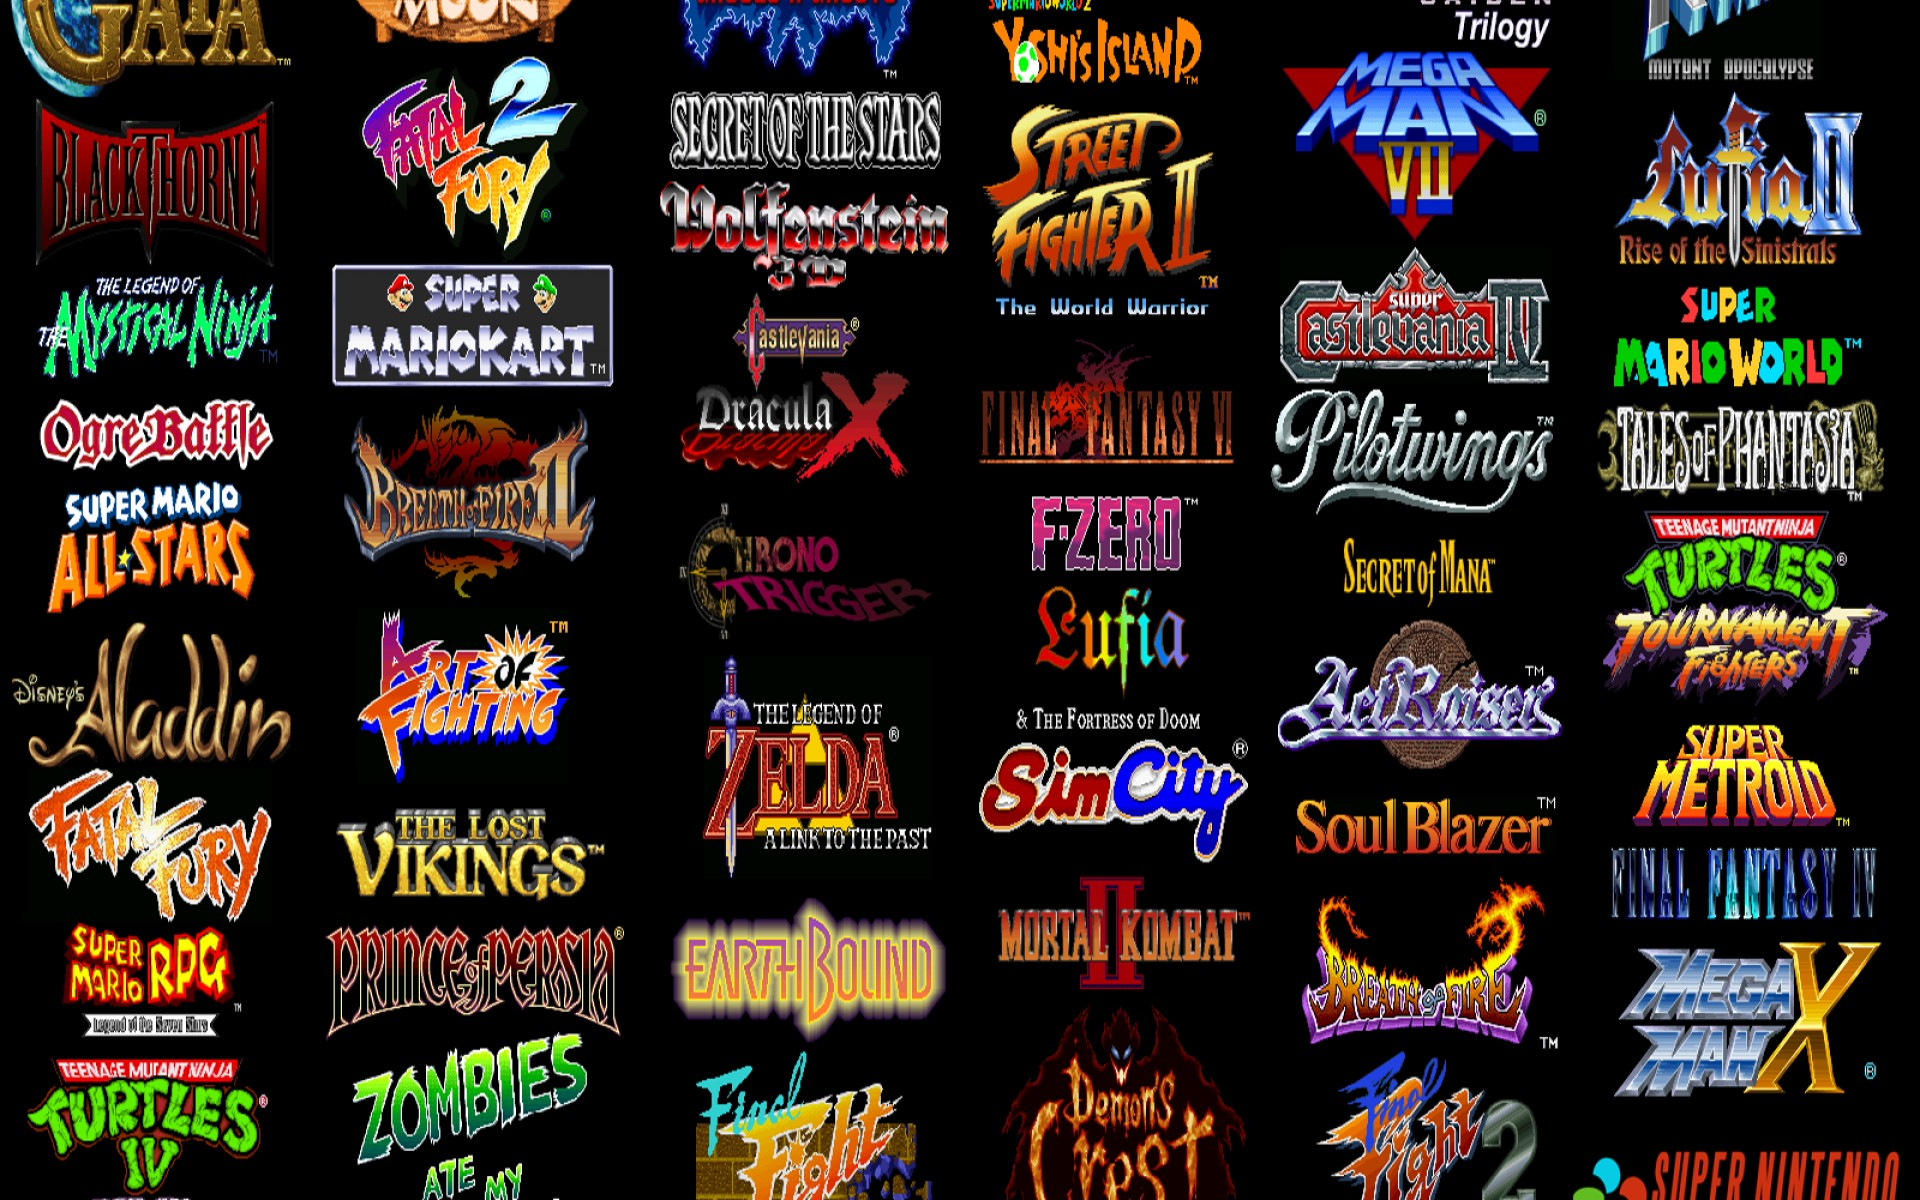 Video games super nintendo retro games wallpaper background 1920x1200